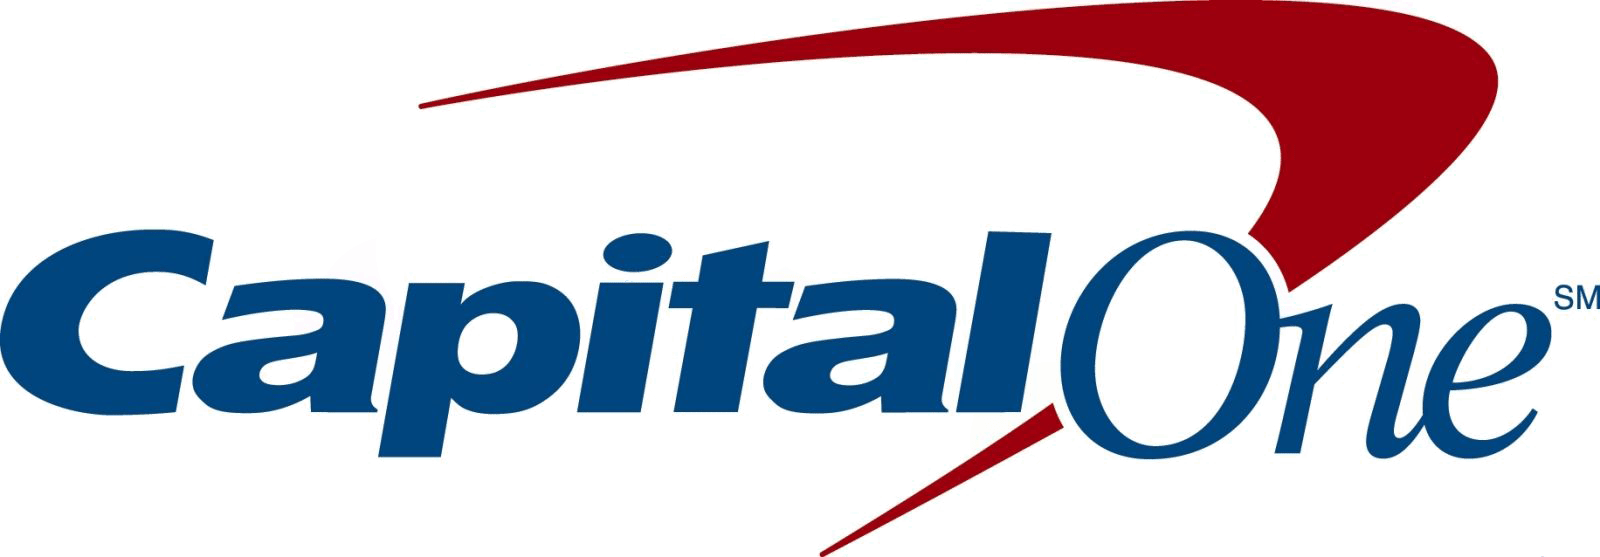 CapitalOne Logo - transparent